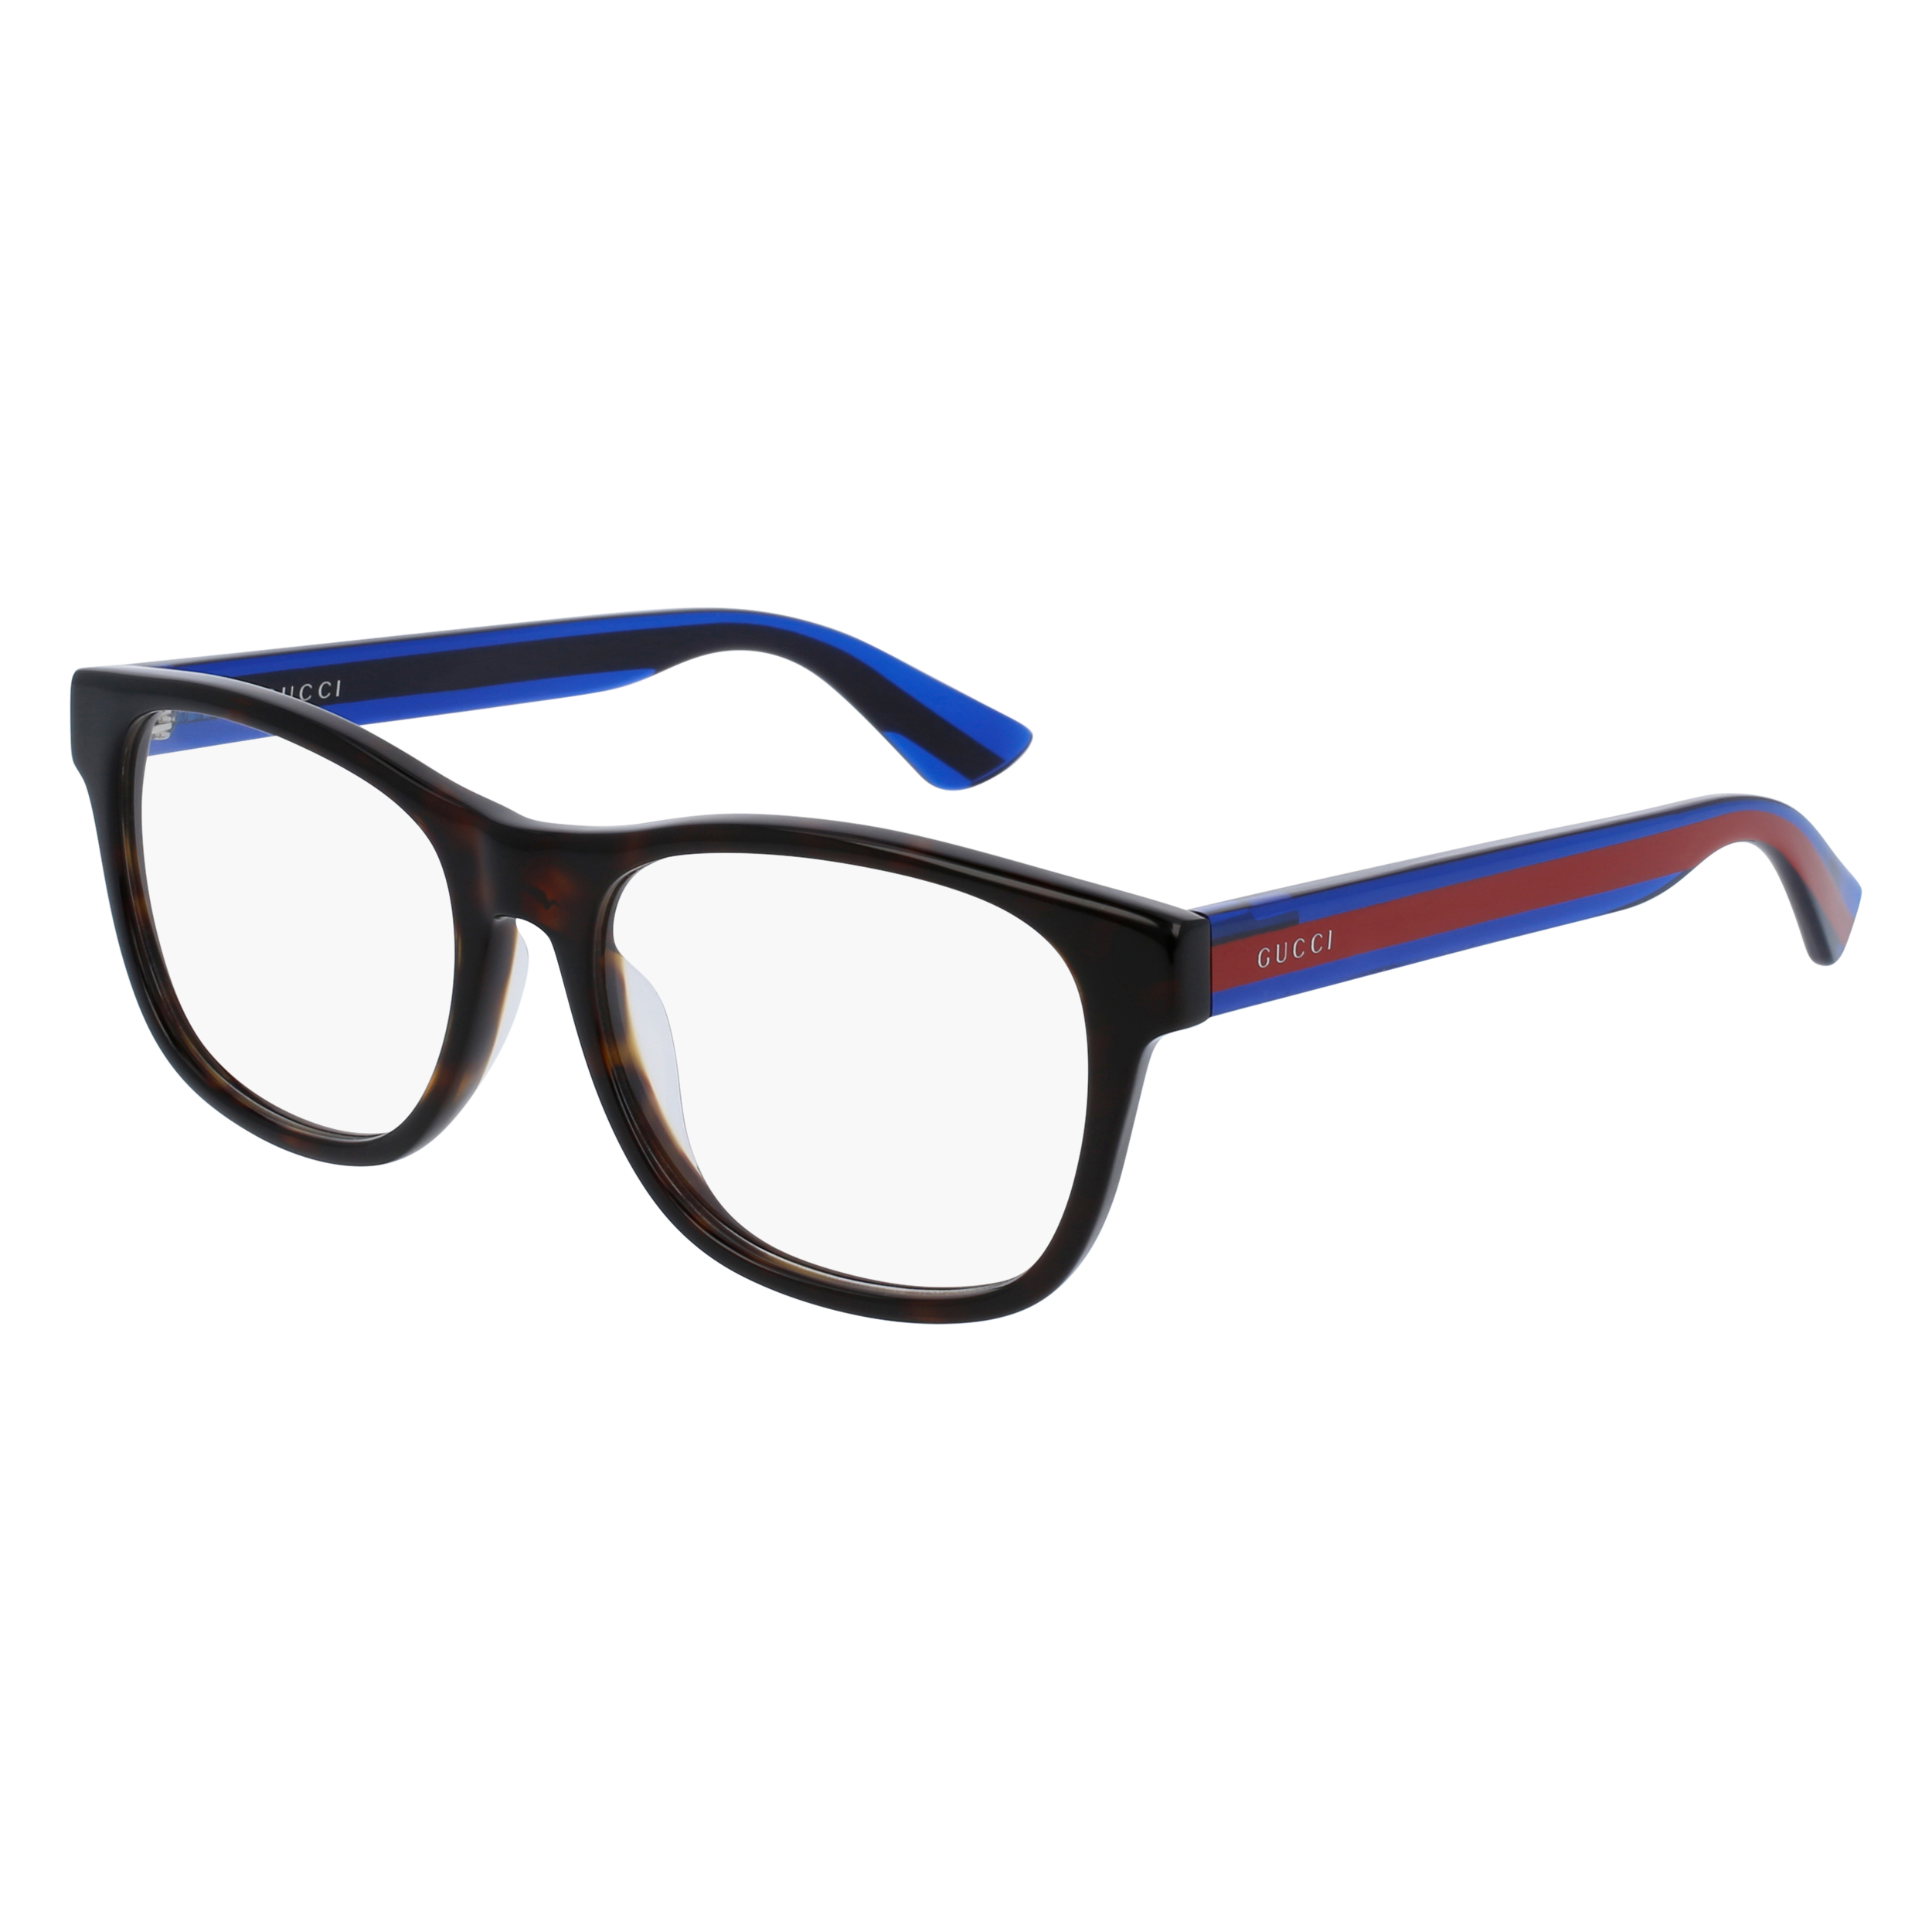 35d226b19b0e Gucci Havana Blue Transparent 003 | wish list | Gucci eyeglasses ...